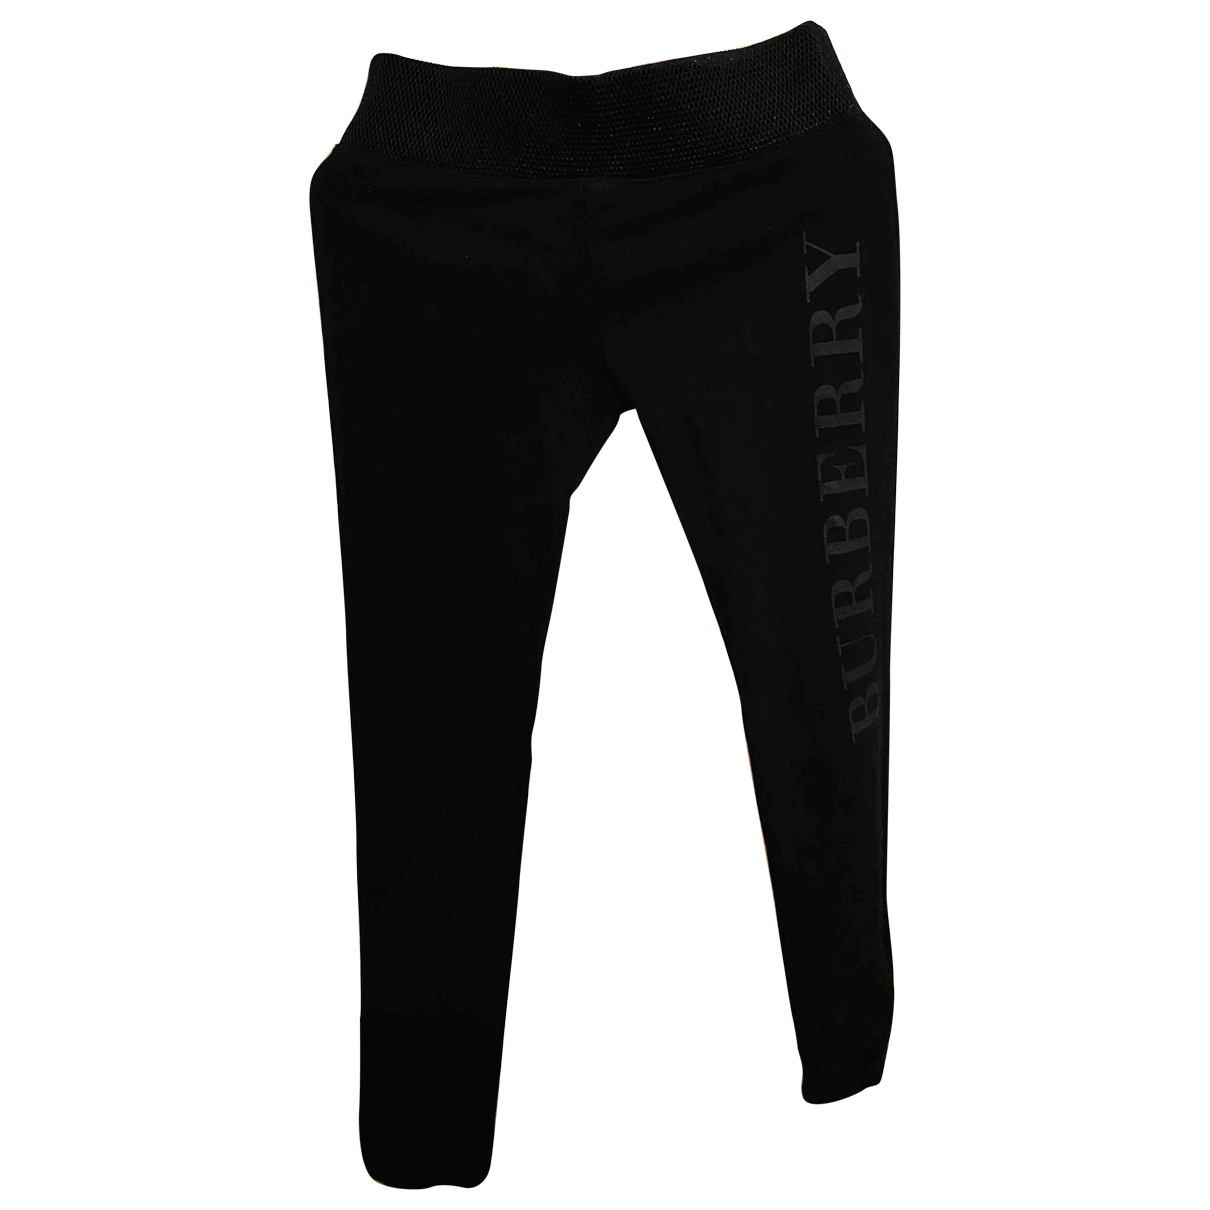 Burberry \N Black Cotton Trousers for Women S International